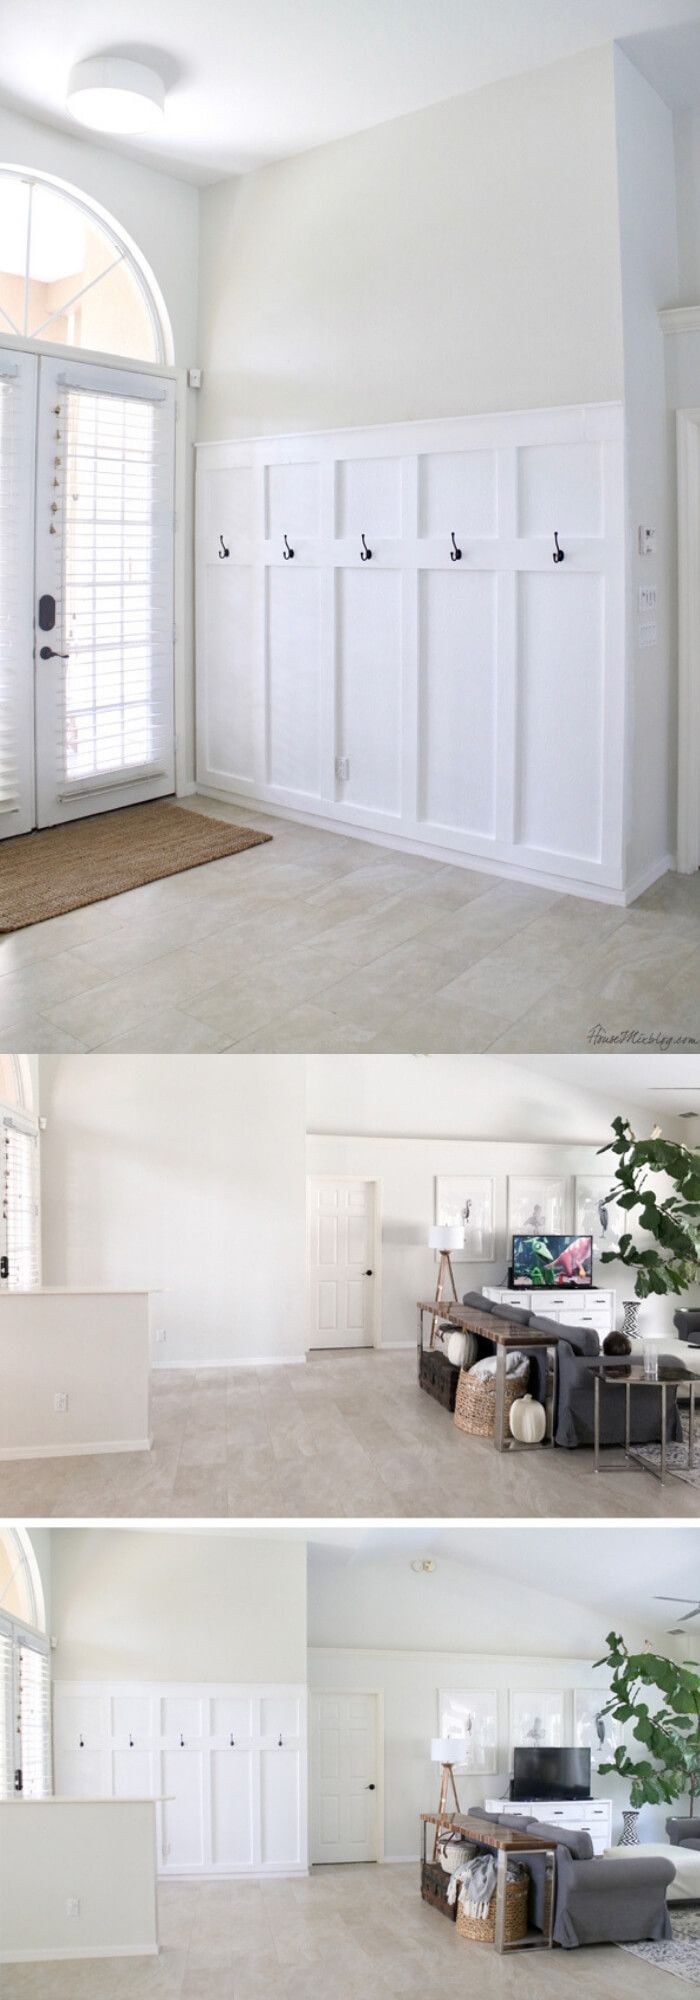 27 Amazing Wainscoting Ideas Designs For Your Home 2020 In 2020 Bathroom Design Luxury Home Bathroom Tile Designs